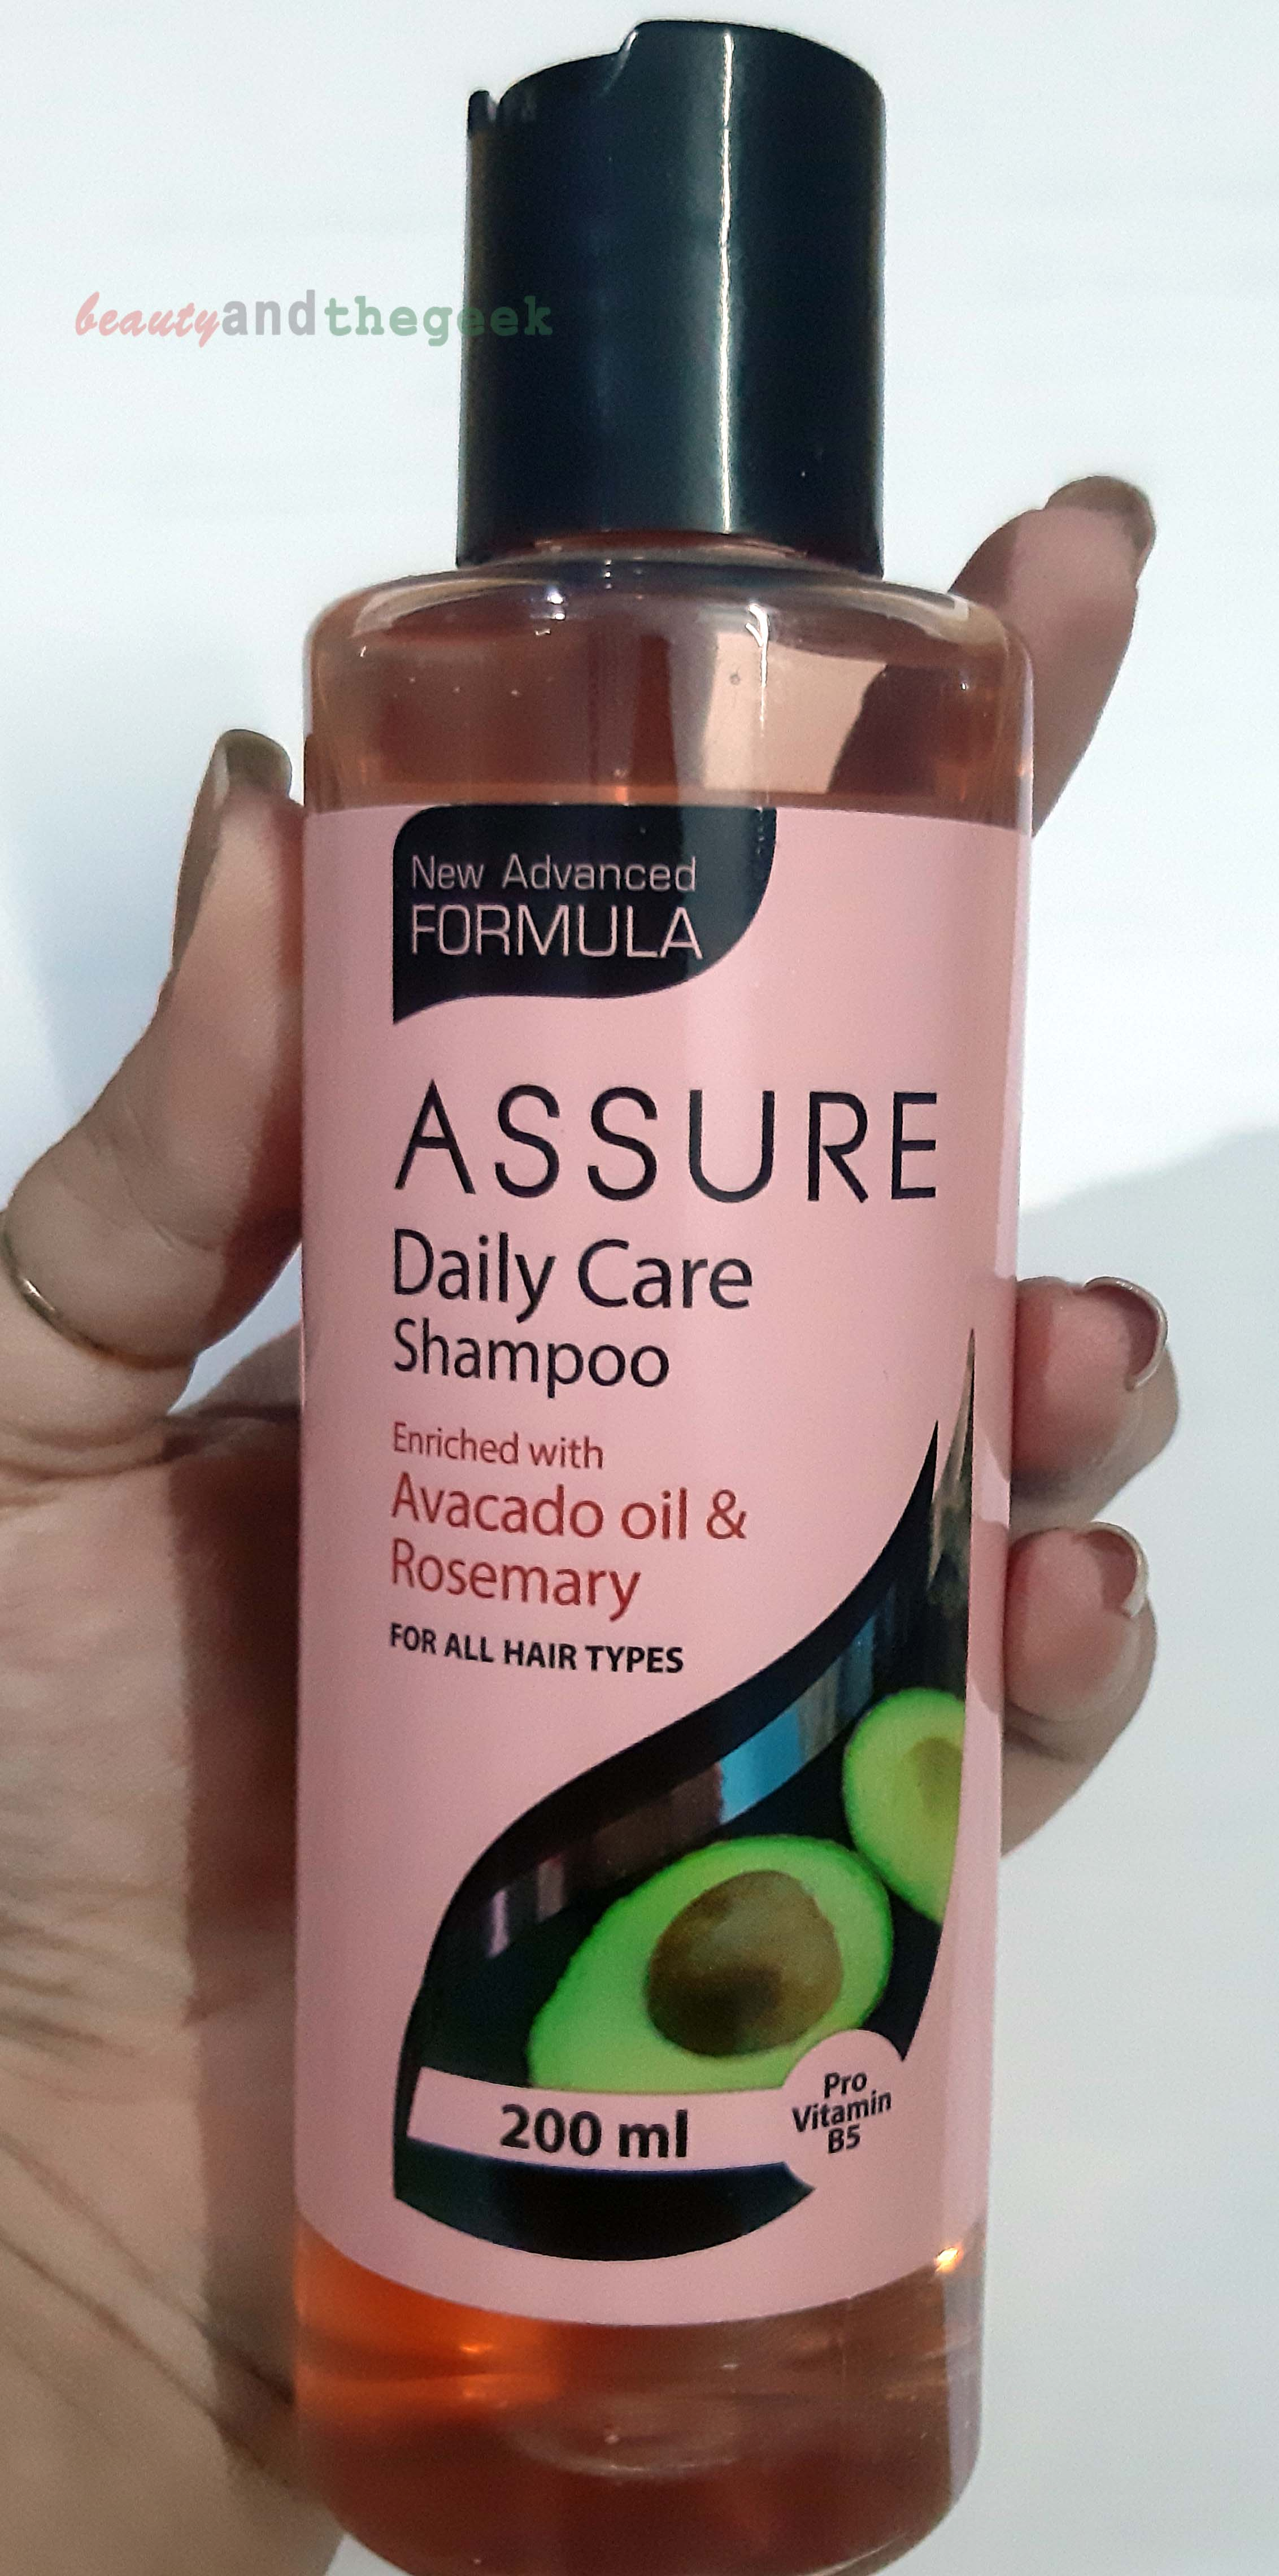 Vestige Assure daily care shampoo enriched with avocado oil and rosemary